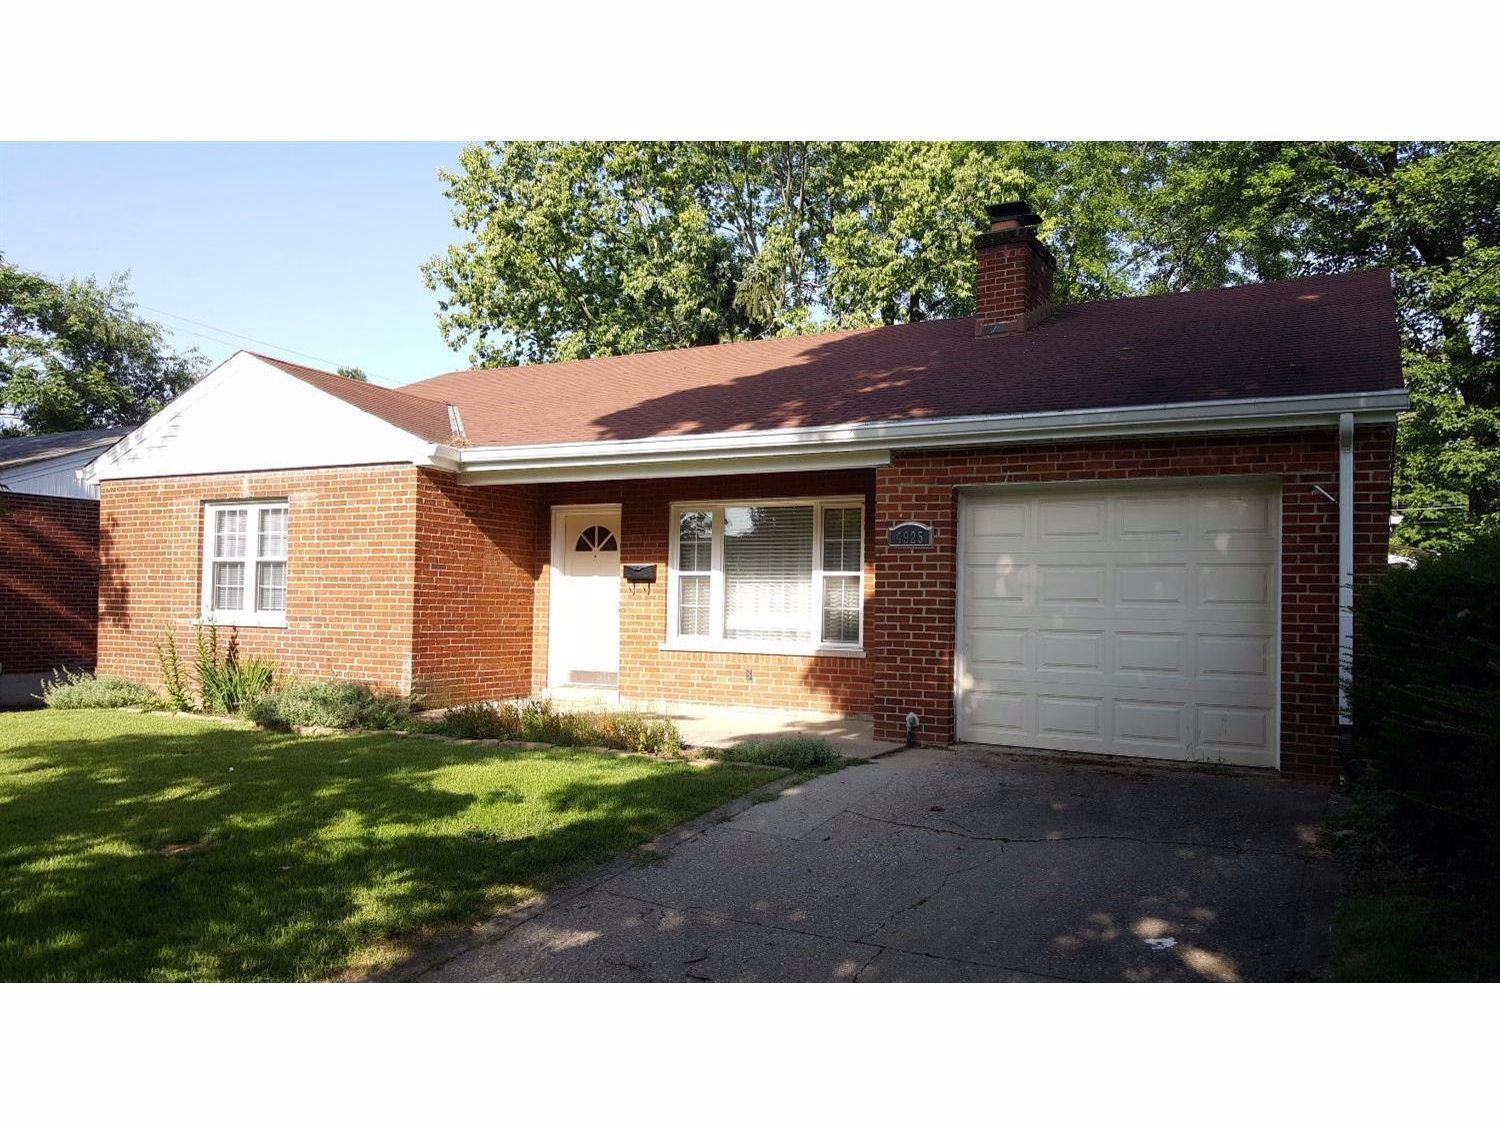 4925 Charlemar Dr Madisonville, OH